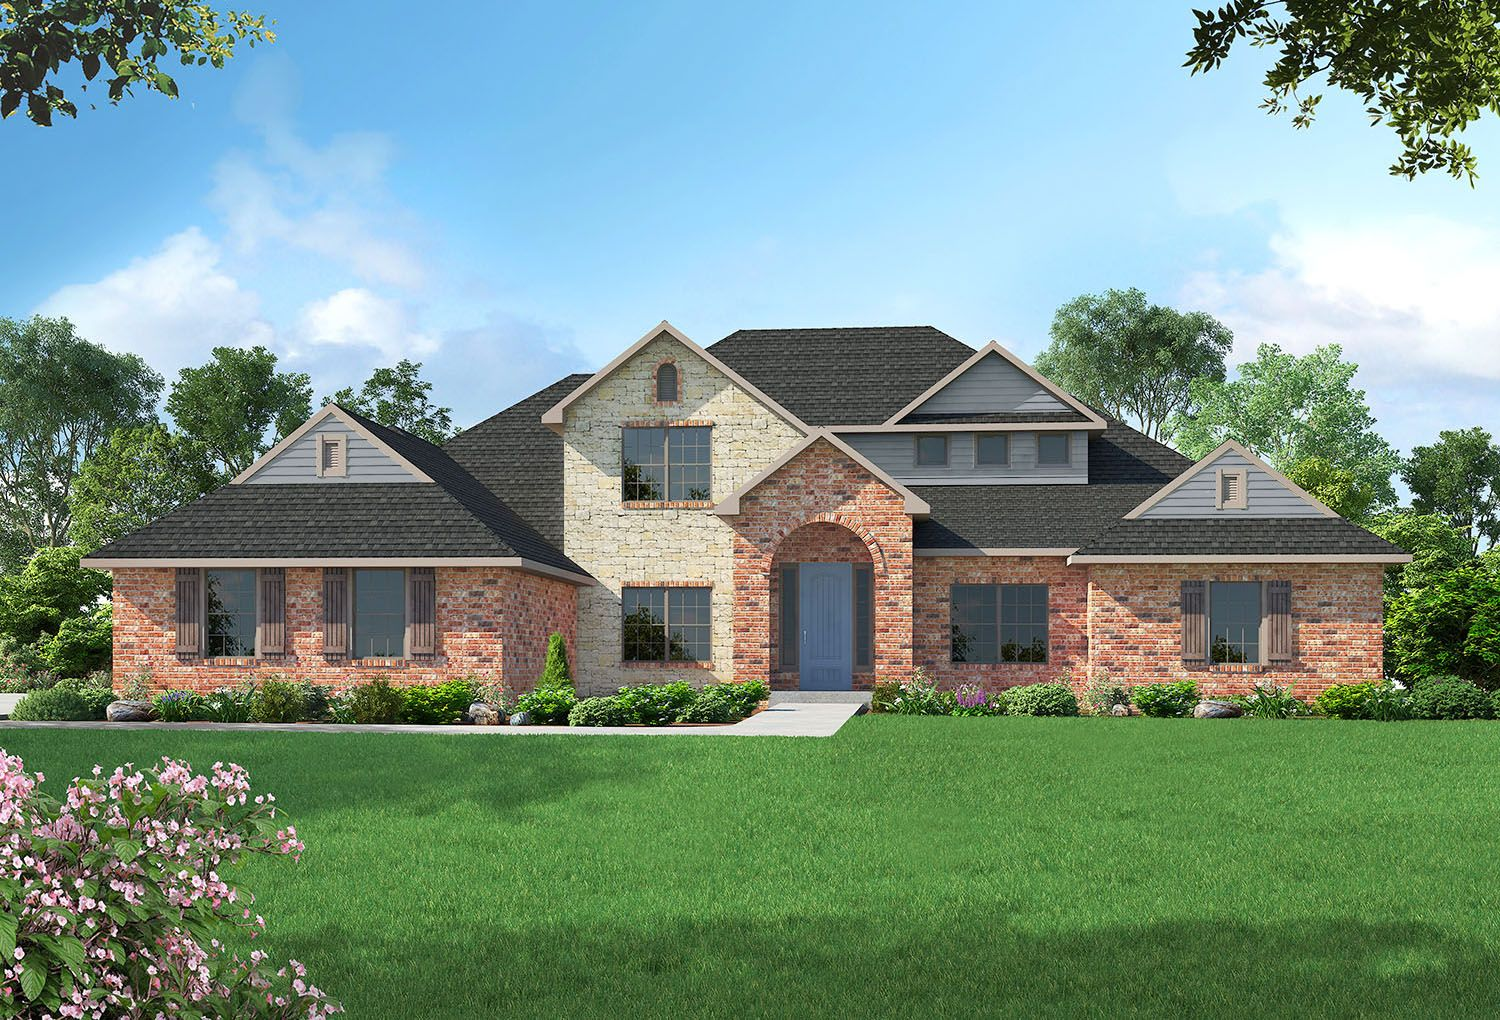 Single Family for Sale at Timberline - Richmond S Midwest Blvd Norman, Oklahoma 73026 United States